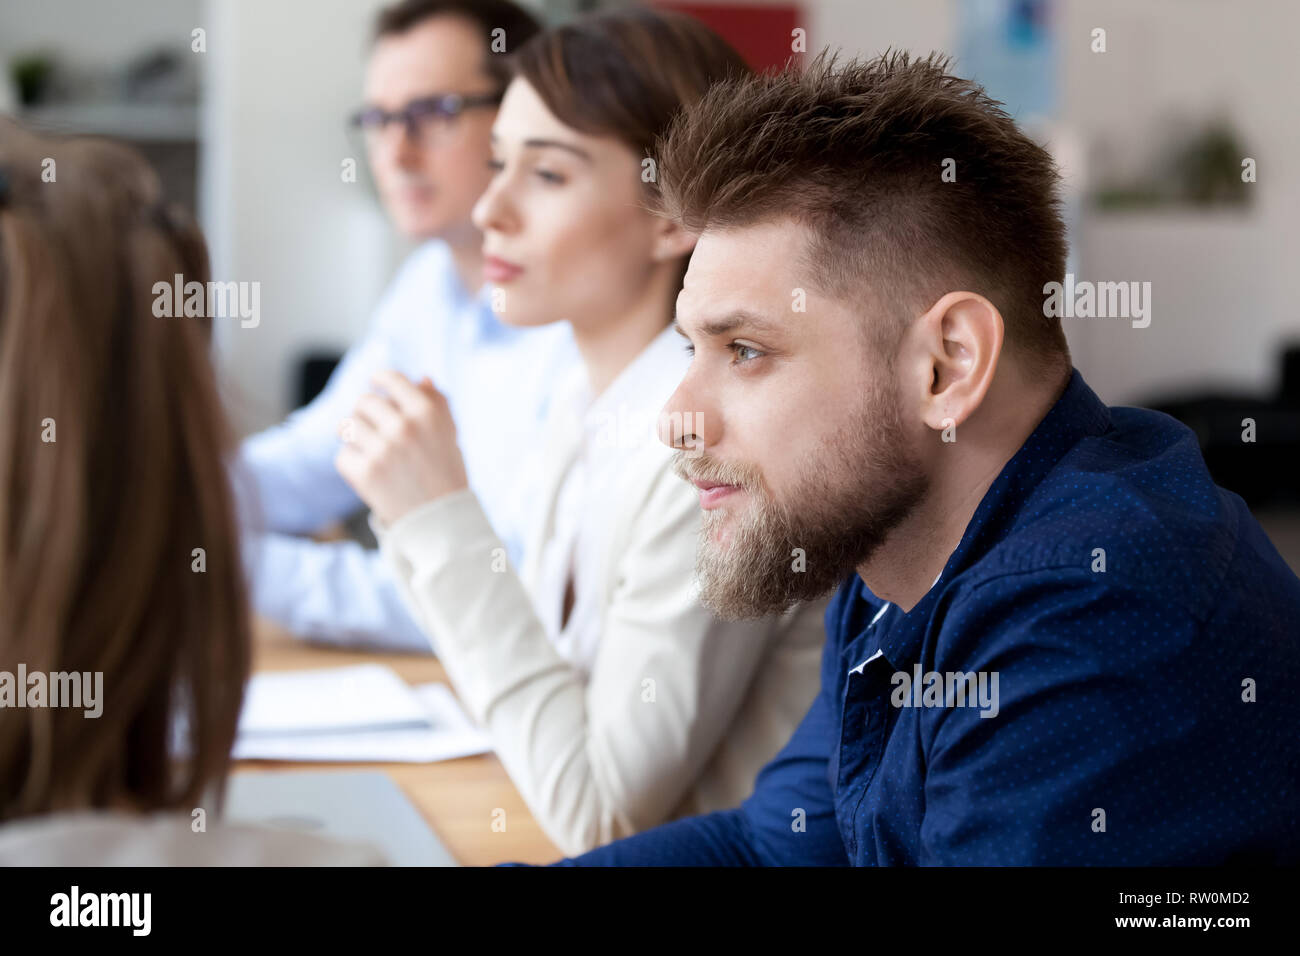 Concentrated millennial employee sitting at business meeting - Stock Image